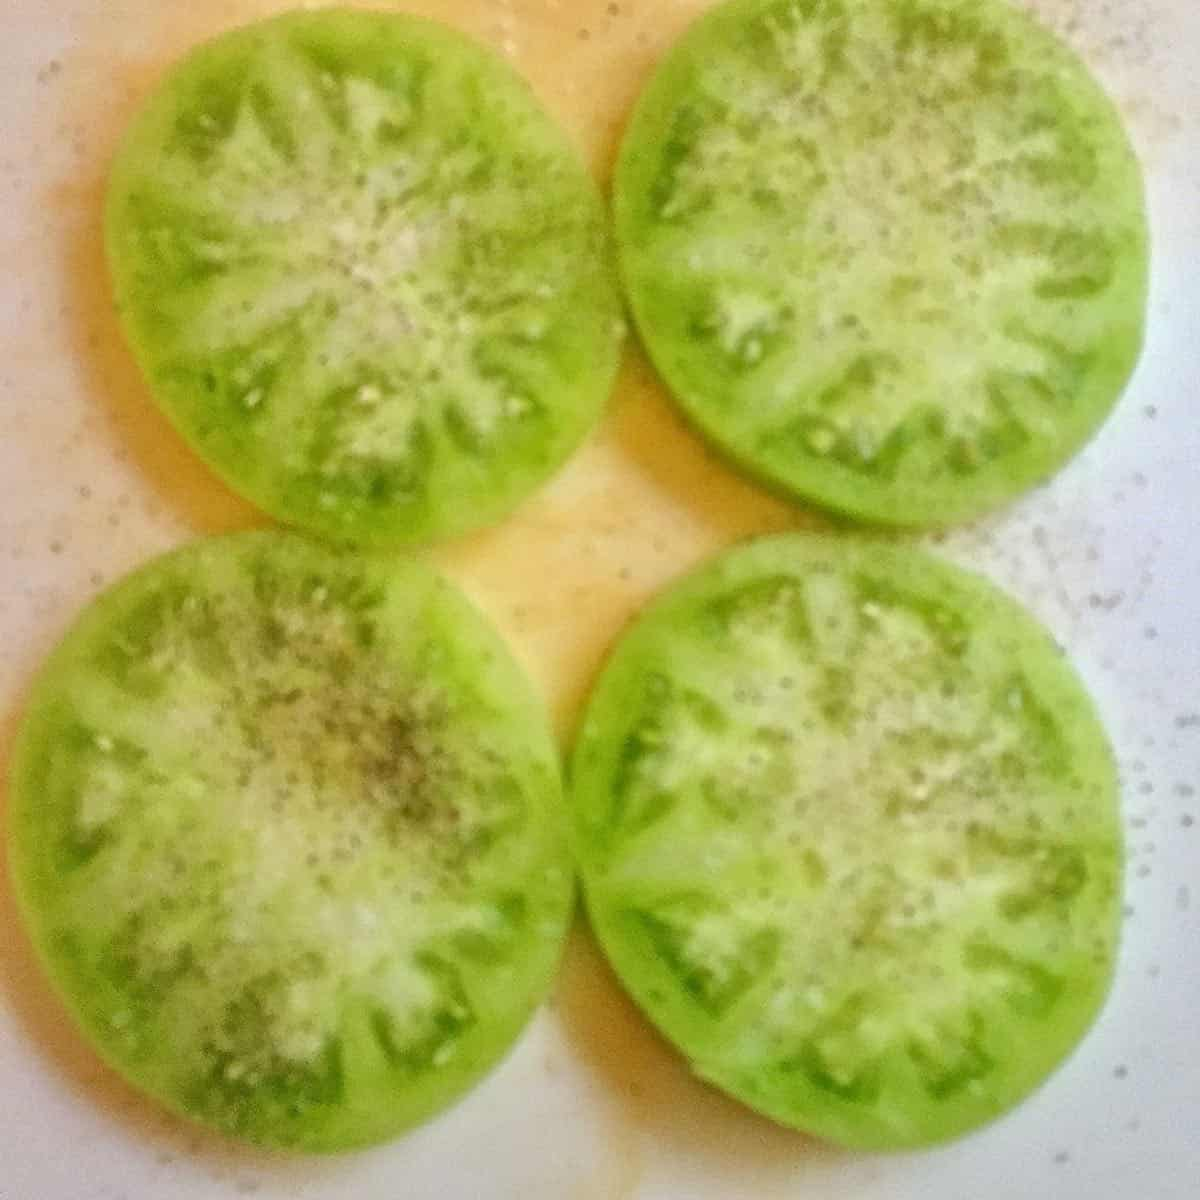 Four slices of green tomatoes.